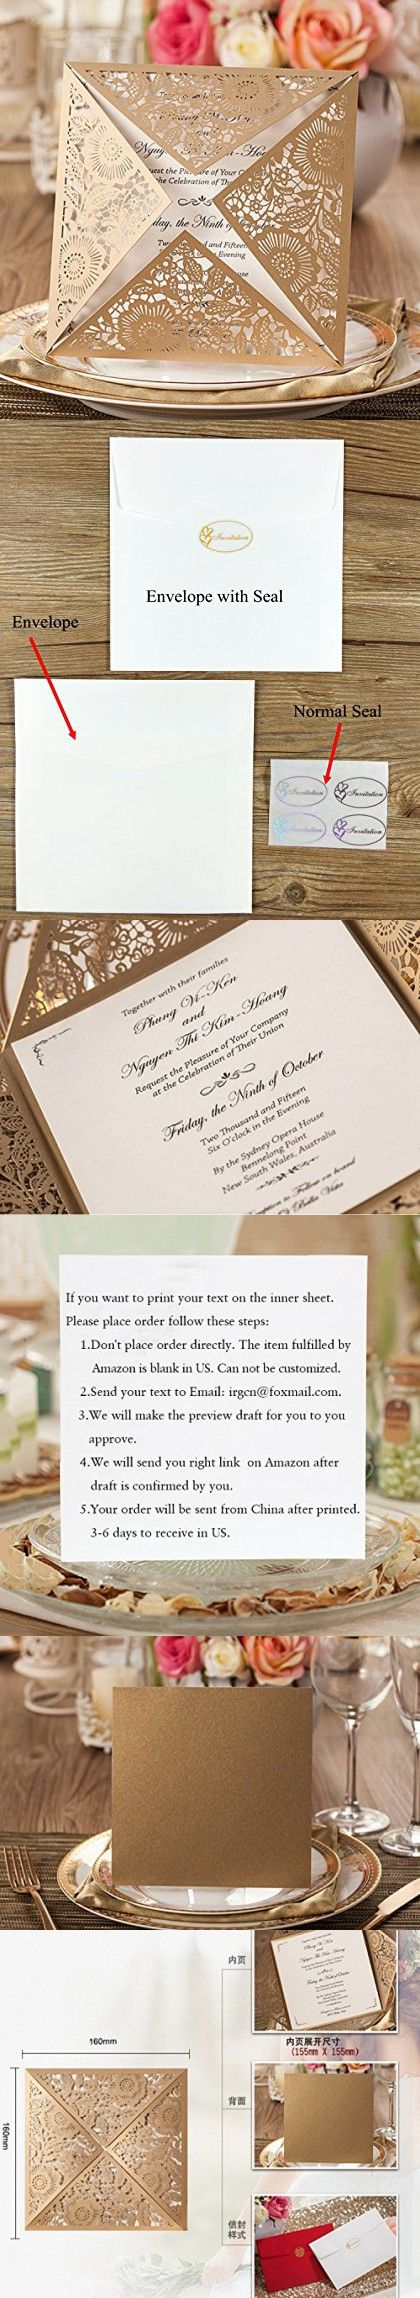 Doris Home wedding invitations wedding invites invitations